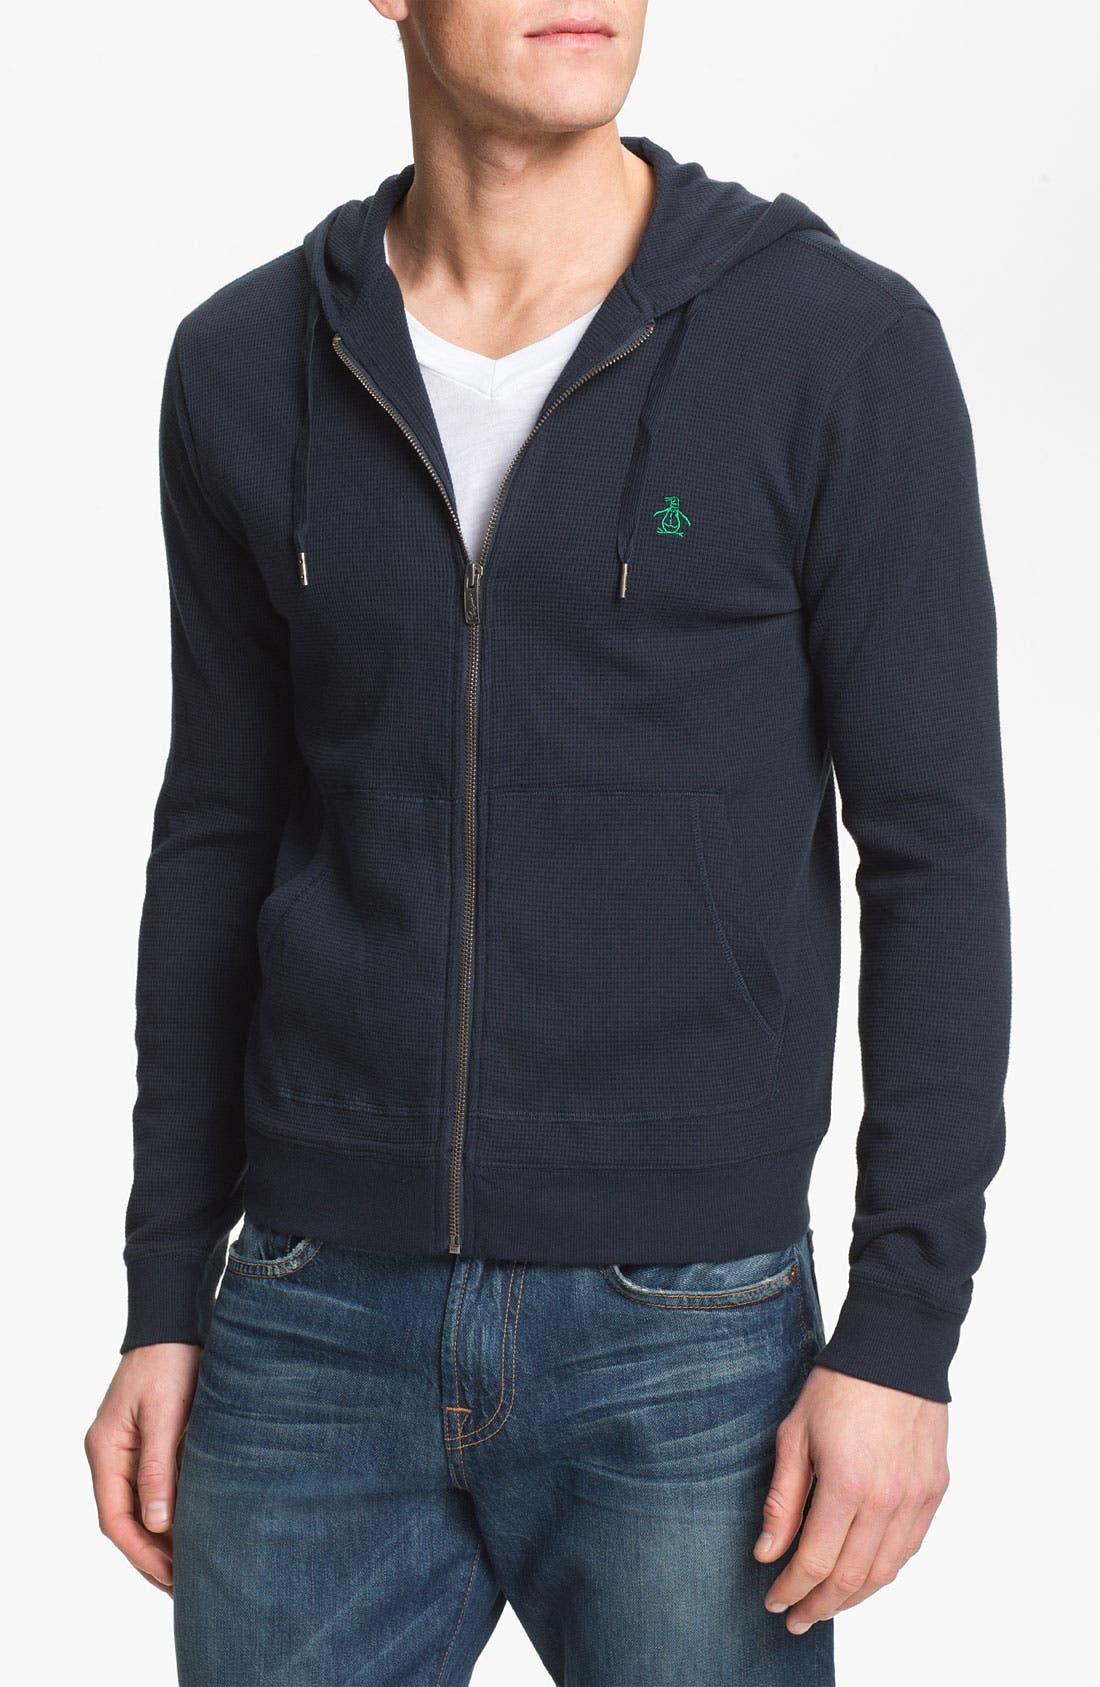 Alternate Image 1 Selected - Original Penguin Waffle Knit Zip Hoodie